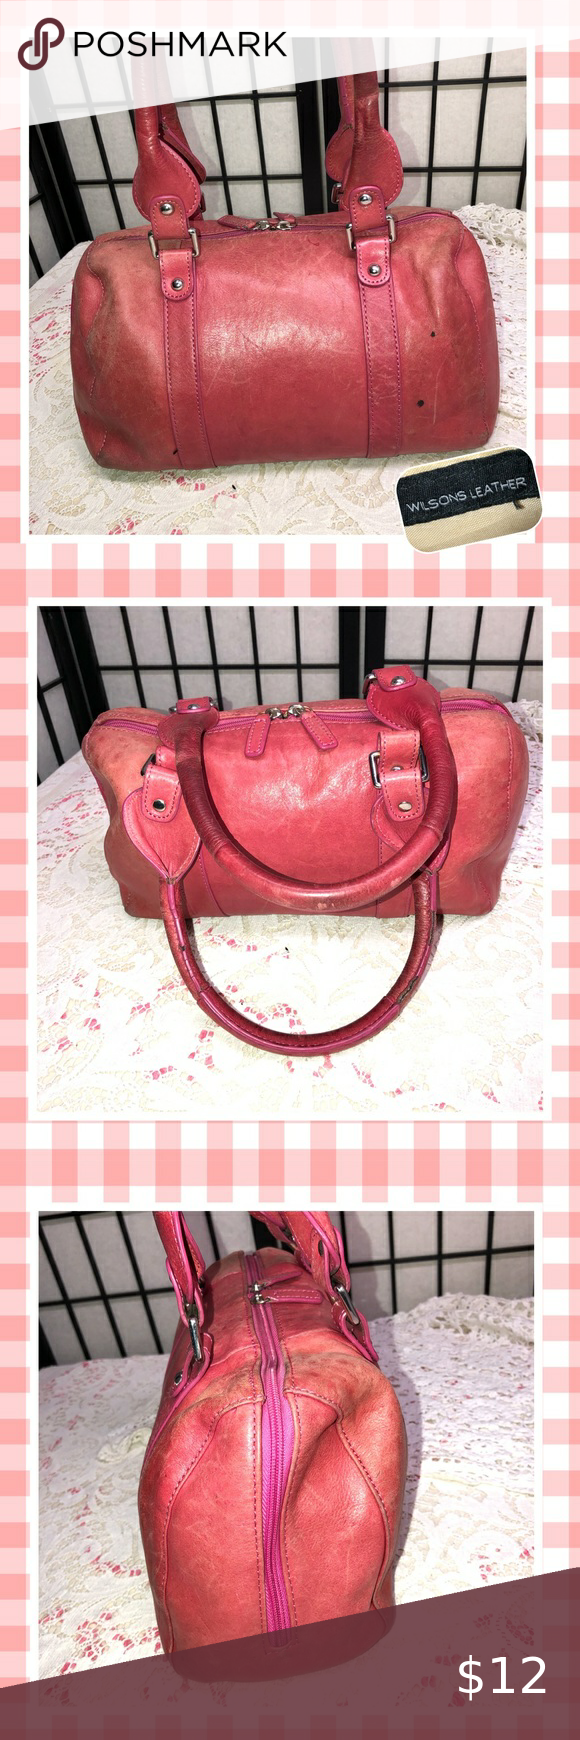 PROJECT PURSE WilsonsLeather Red Barrel Bag in 2020